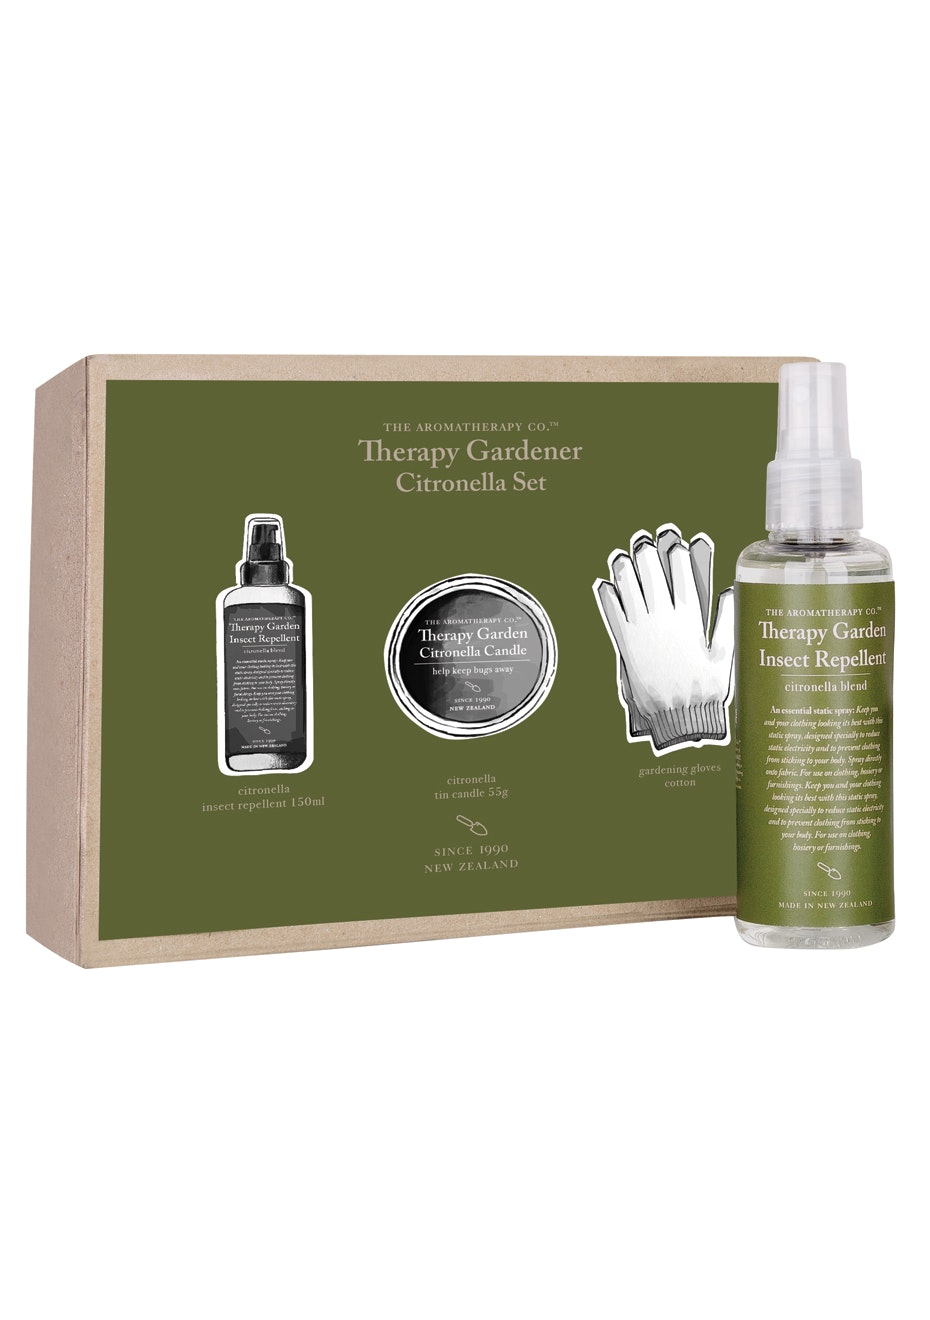 The Aromatherapy Co. Therapy Gardener Gift Set